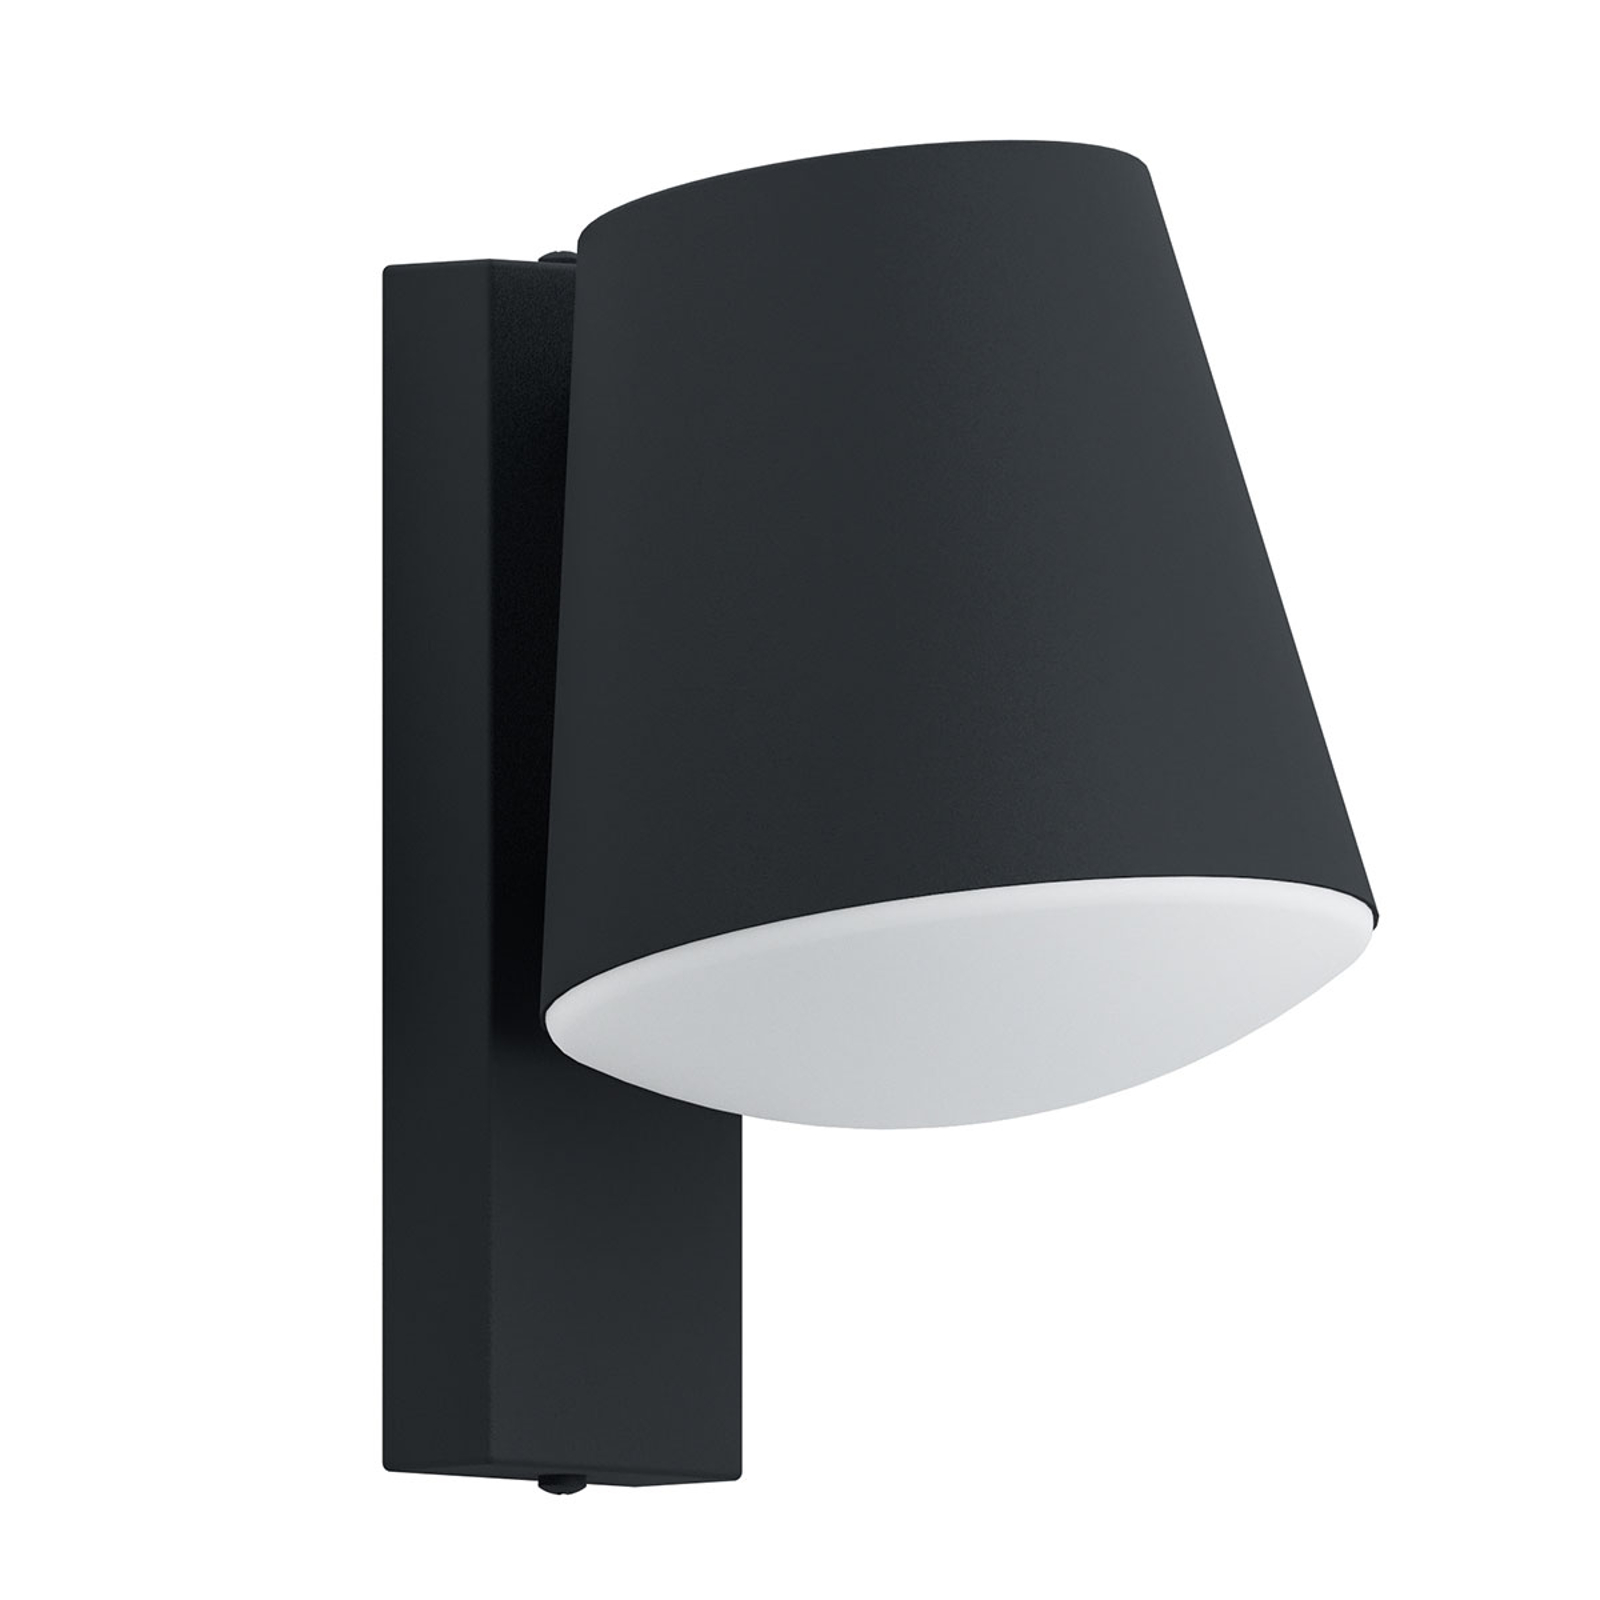 EGLO connect Caldiero-C applique LED anthracite